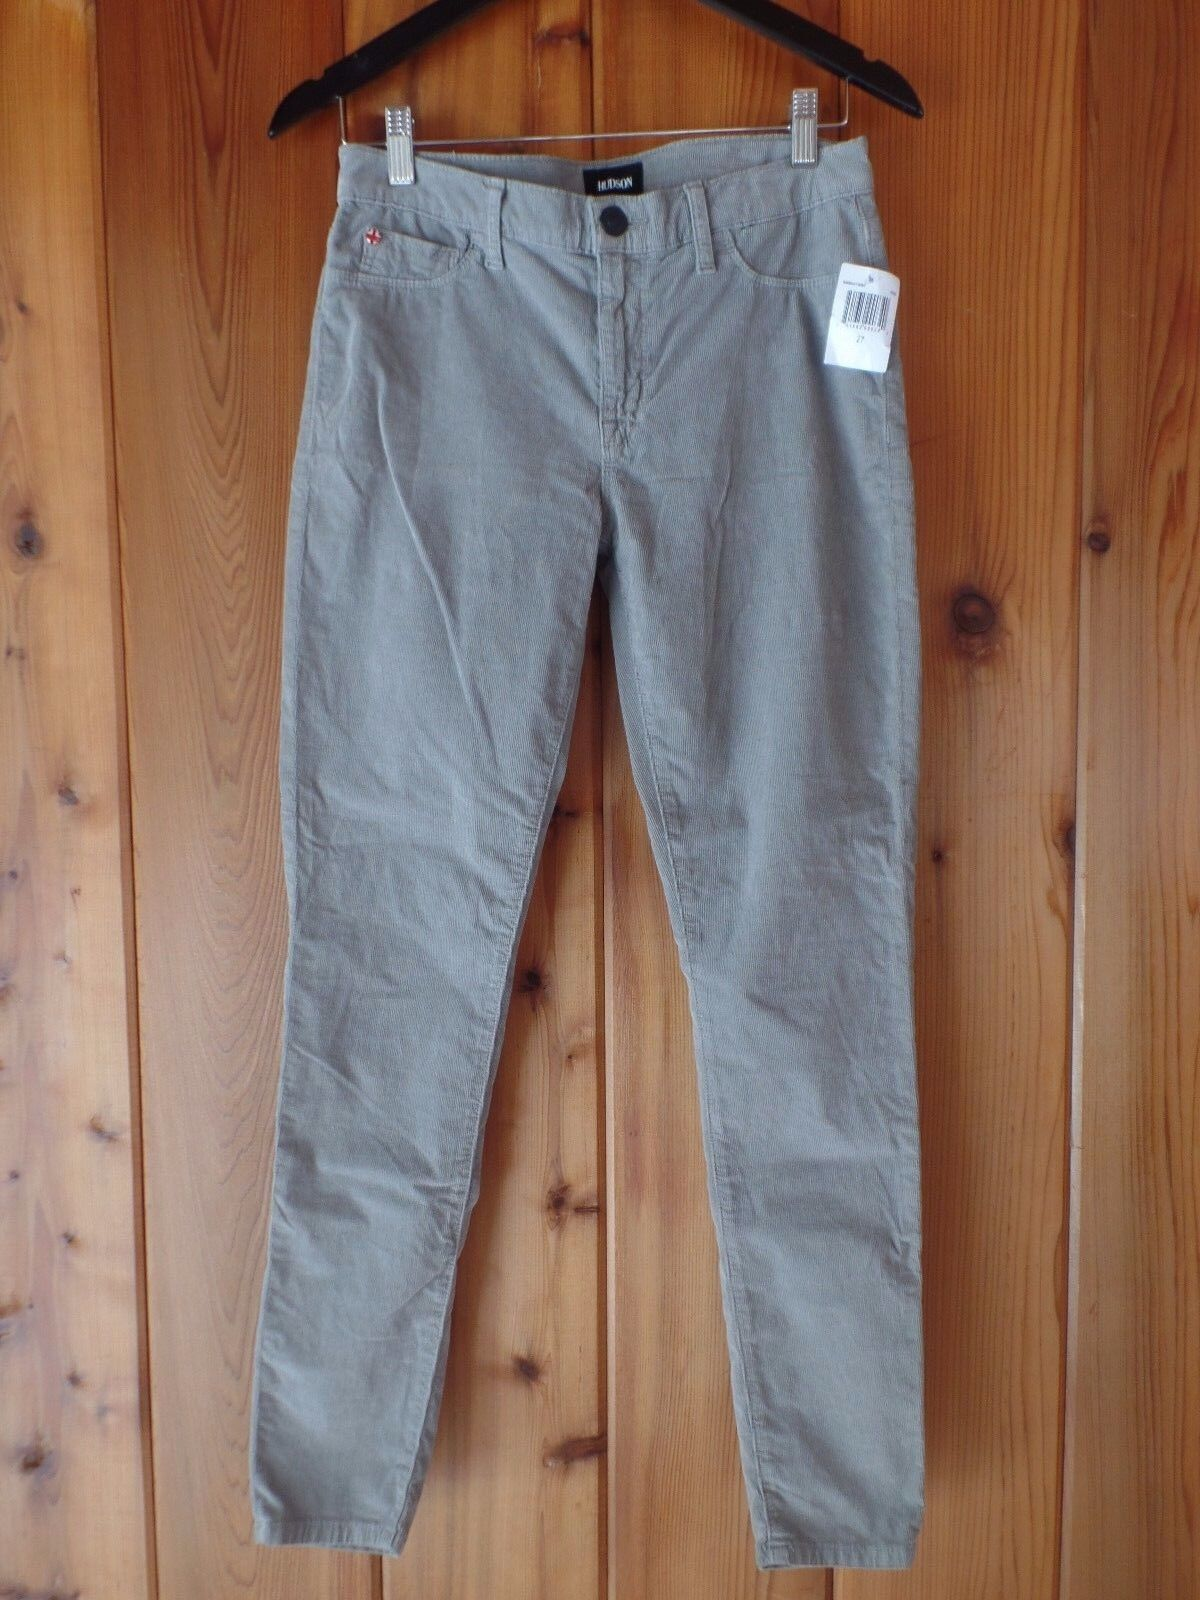 New Hudson Nico Super Skinny Corduroy Pants In Pebble Size 27